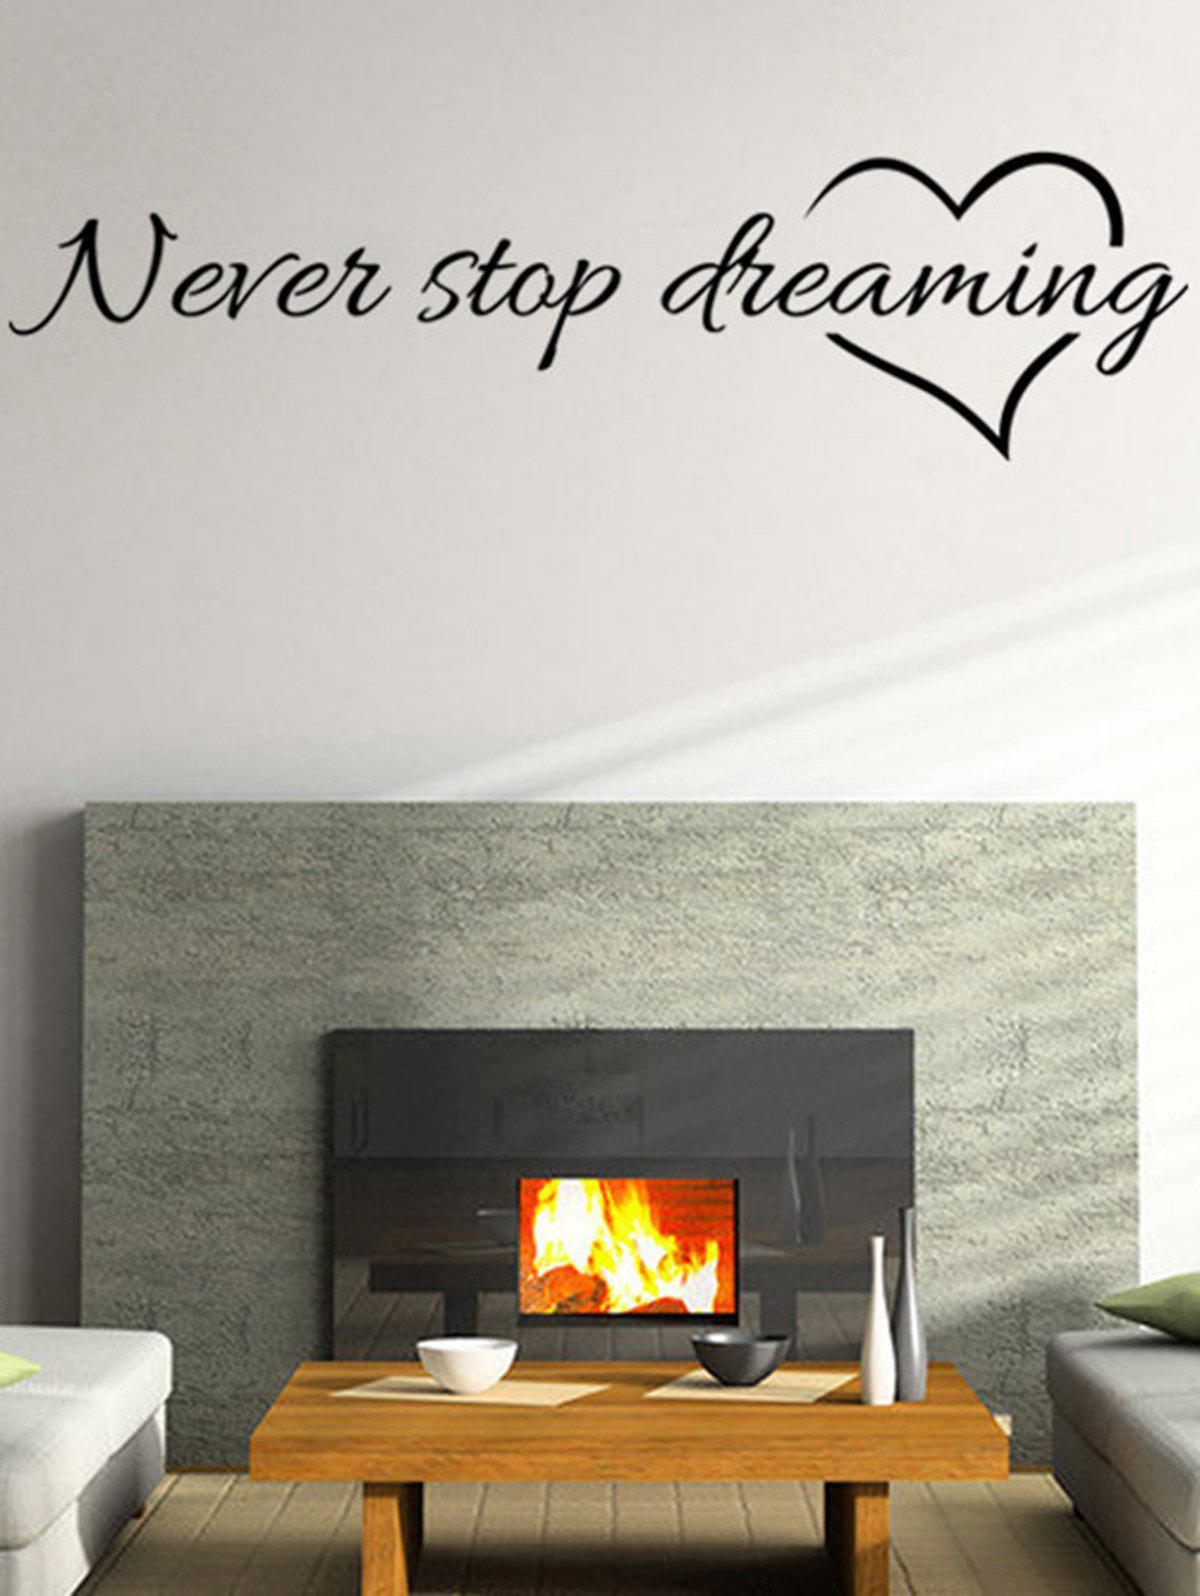 Never Stop Dreaming Quote Wall Stickers sda100 100 free shipping 100mm bore 100mm stroke compact air cylinders sda100x100 dual action air pneumatic cylinder